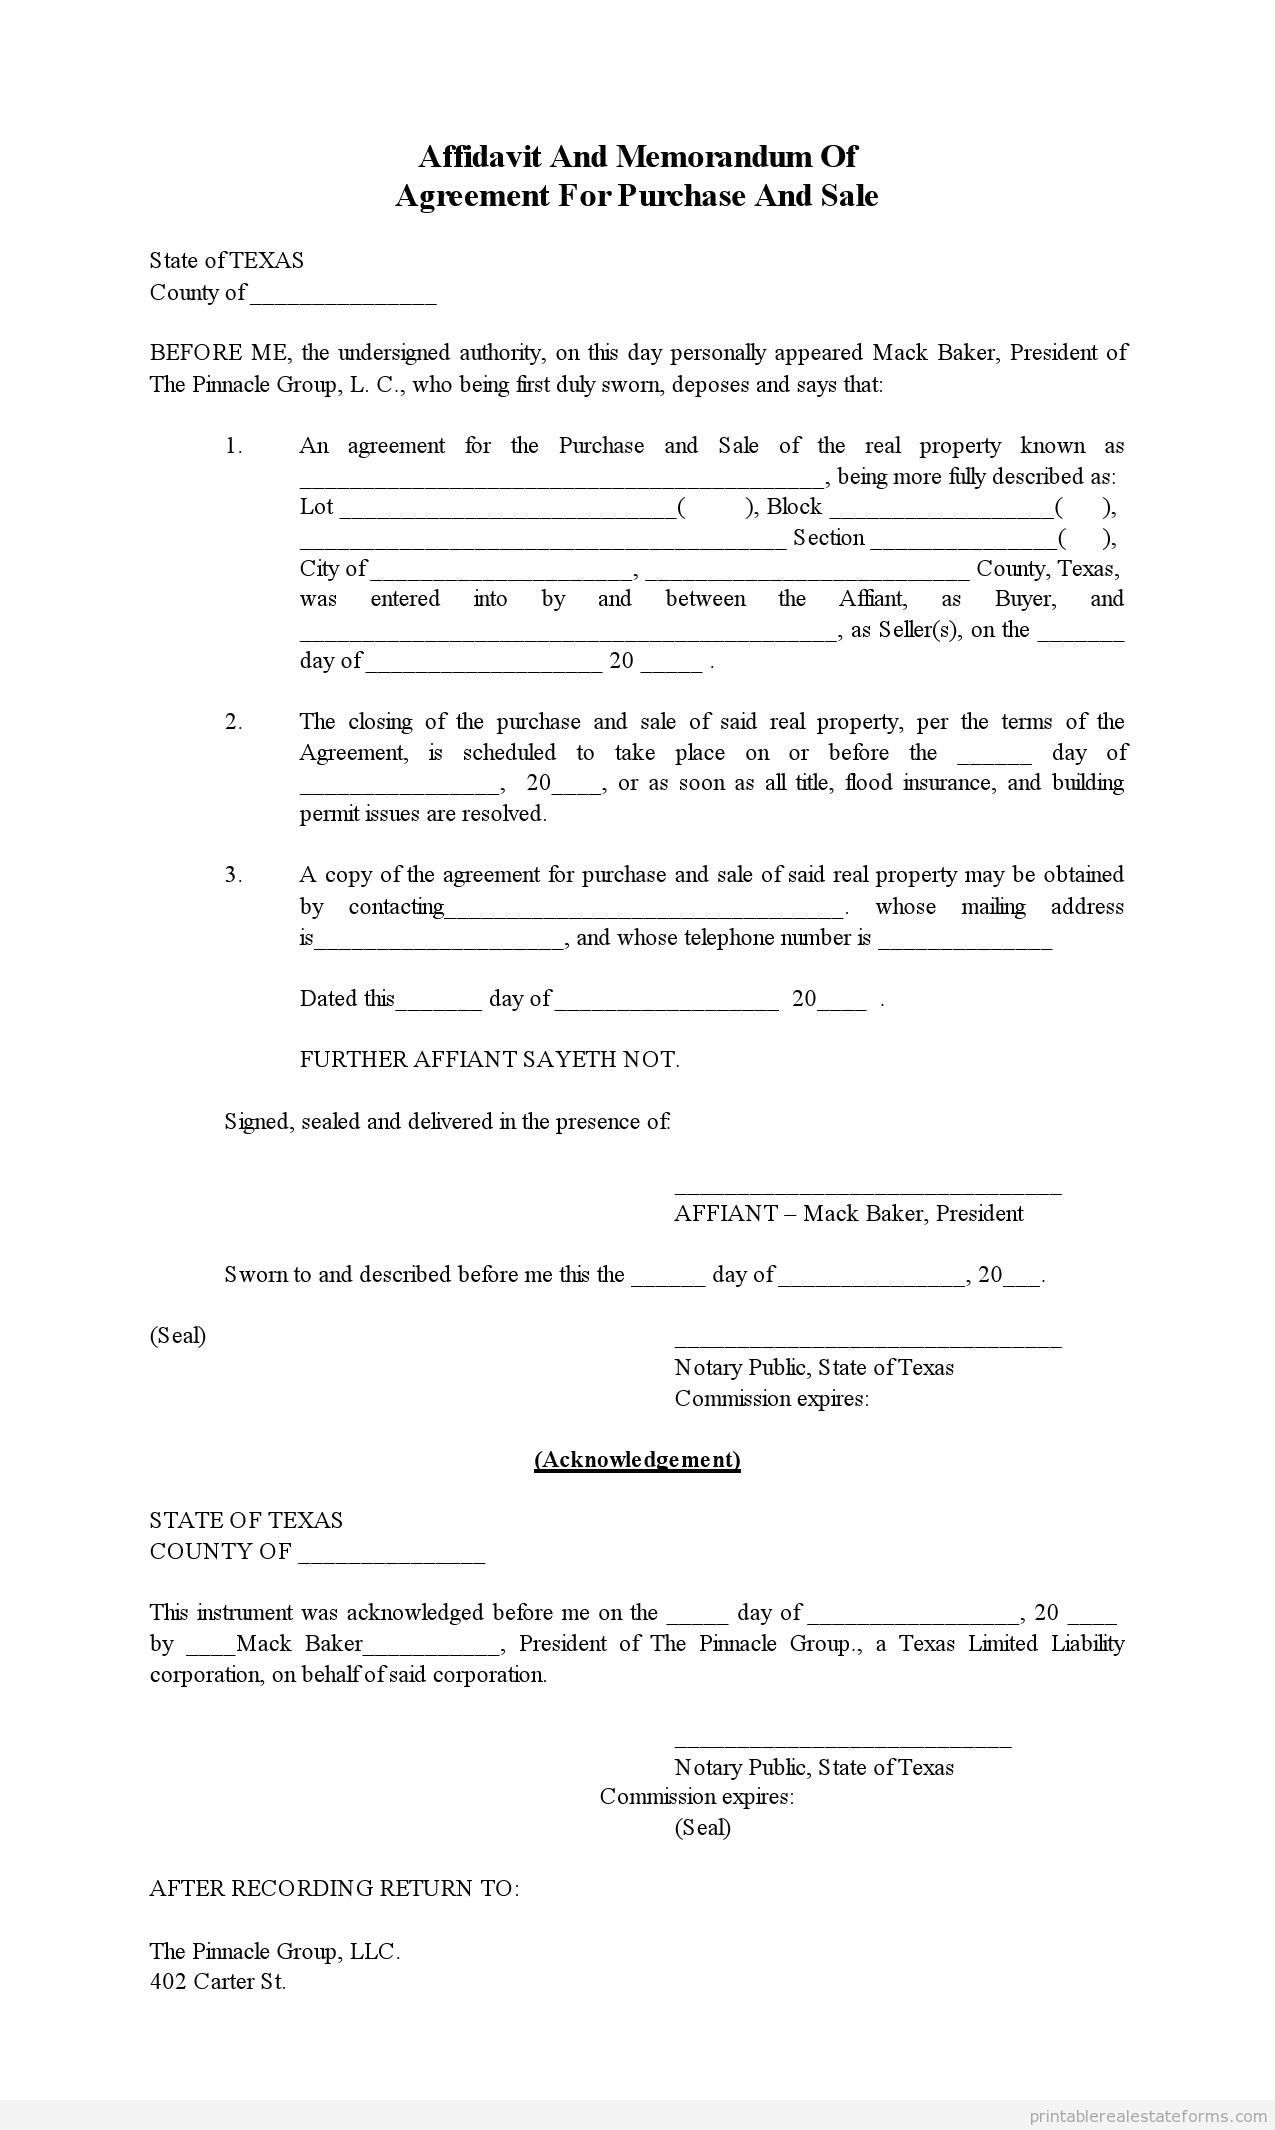 Sample Printable Affidavit Of Memorandum For Purchase And Sale 2